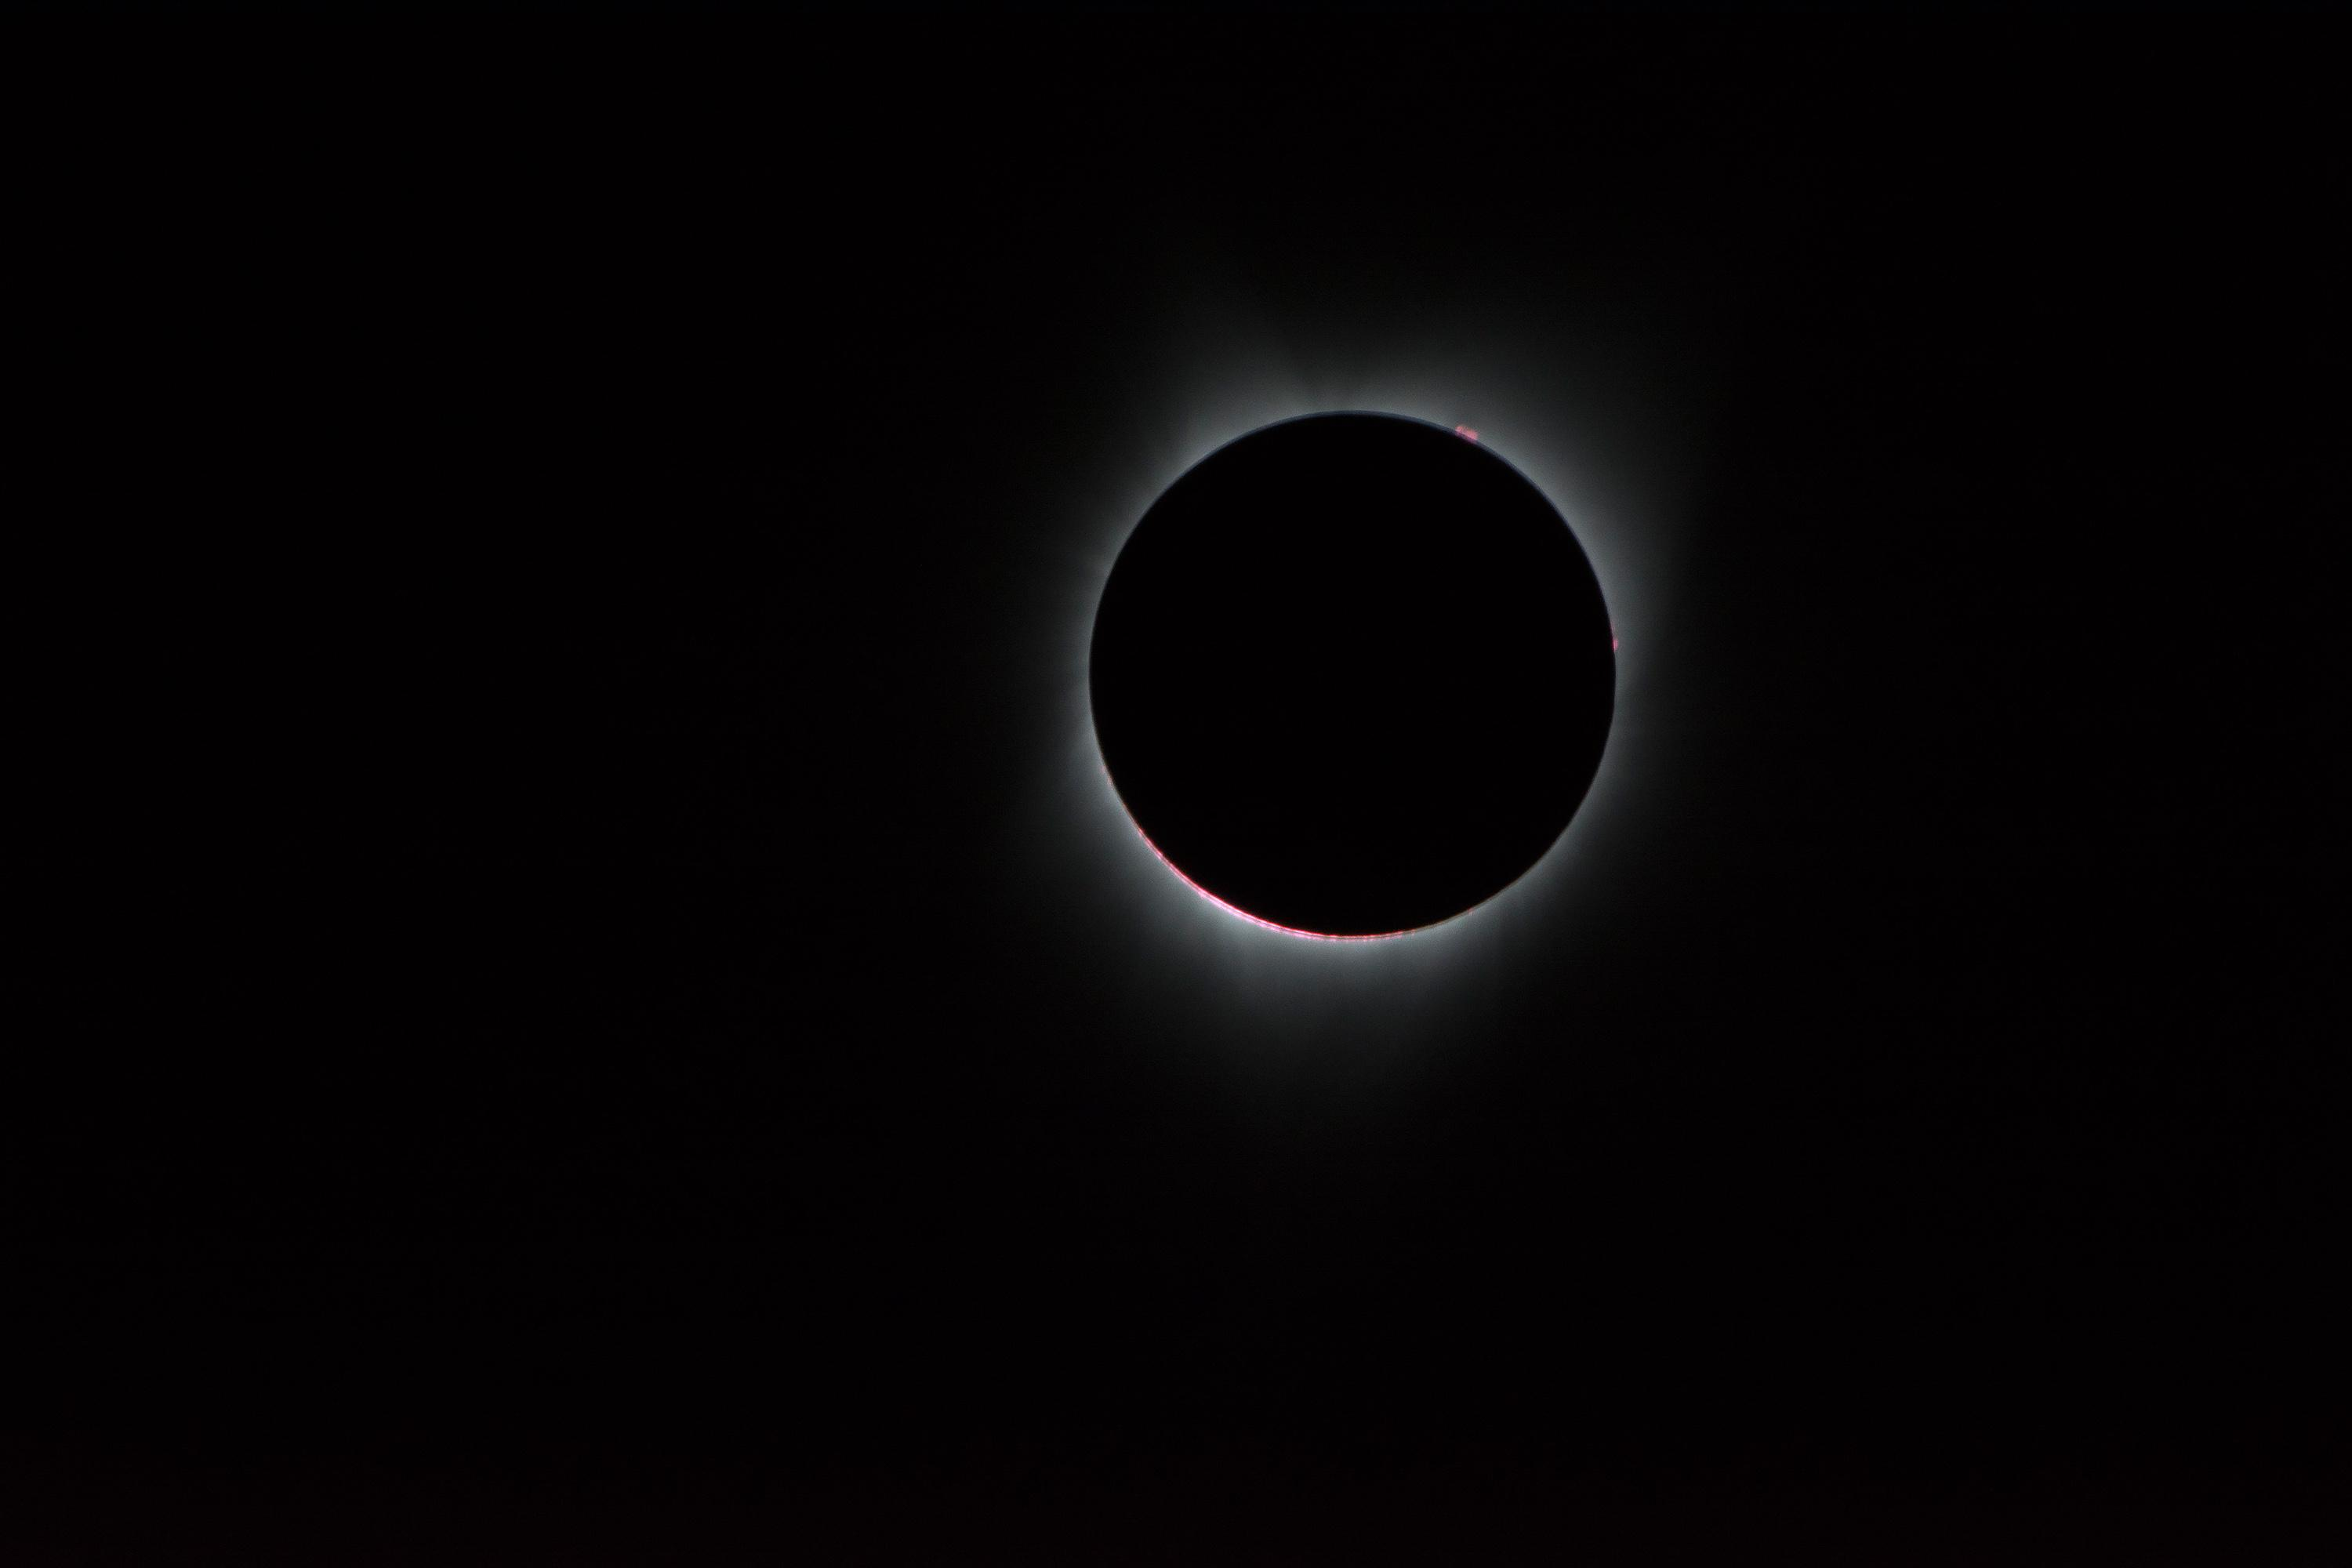 corona during eclipse